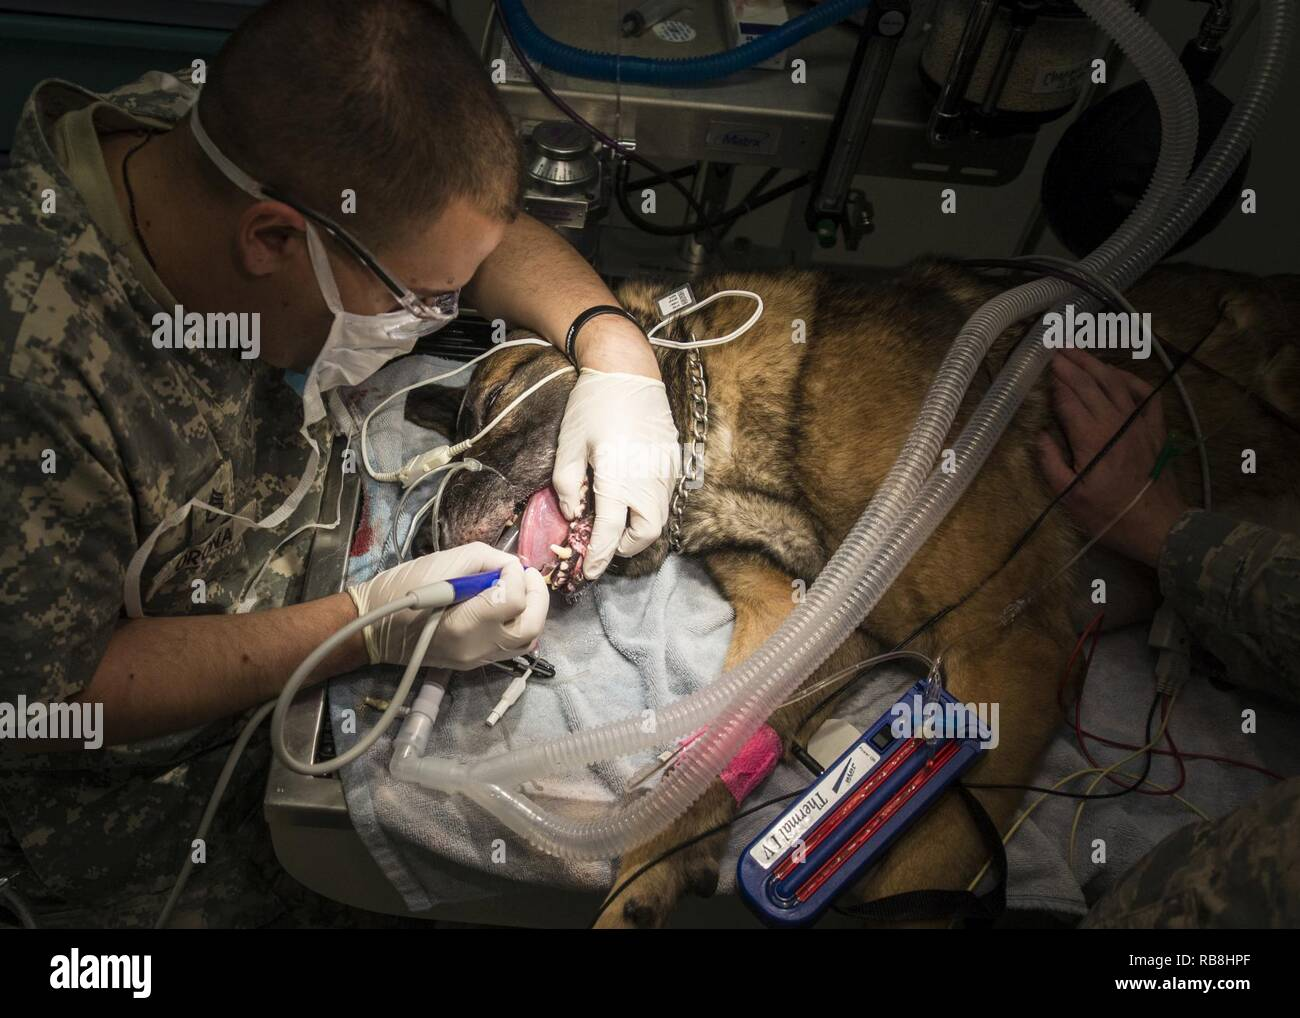 Dylan, a military working dog with the 49th Security Forces Squadron, gets a routine dental cleaning at the veterinary clinic at Holloman Air Force Base, N.M., on Dec. 13, 2016. Holloman's MWDs receive routine dental and medical checkups. A veterinarian is on station 24/7 to assure the health of the dogs. - Stock Image